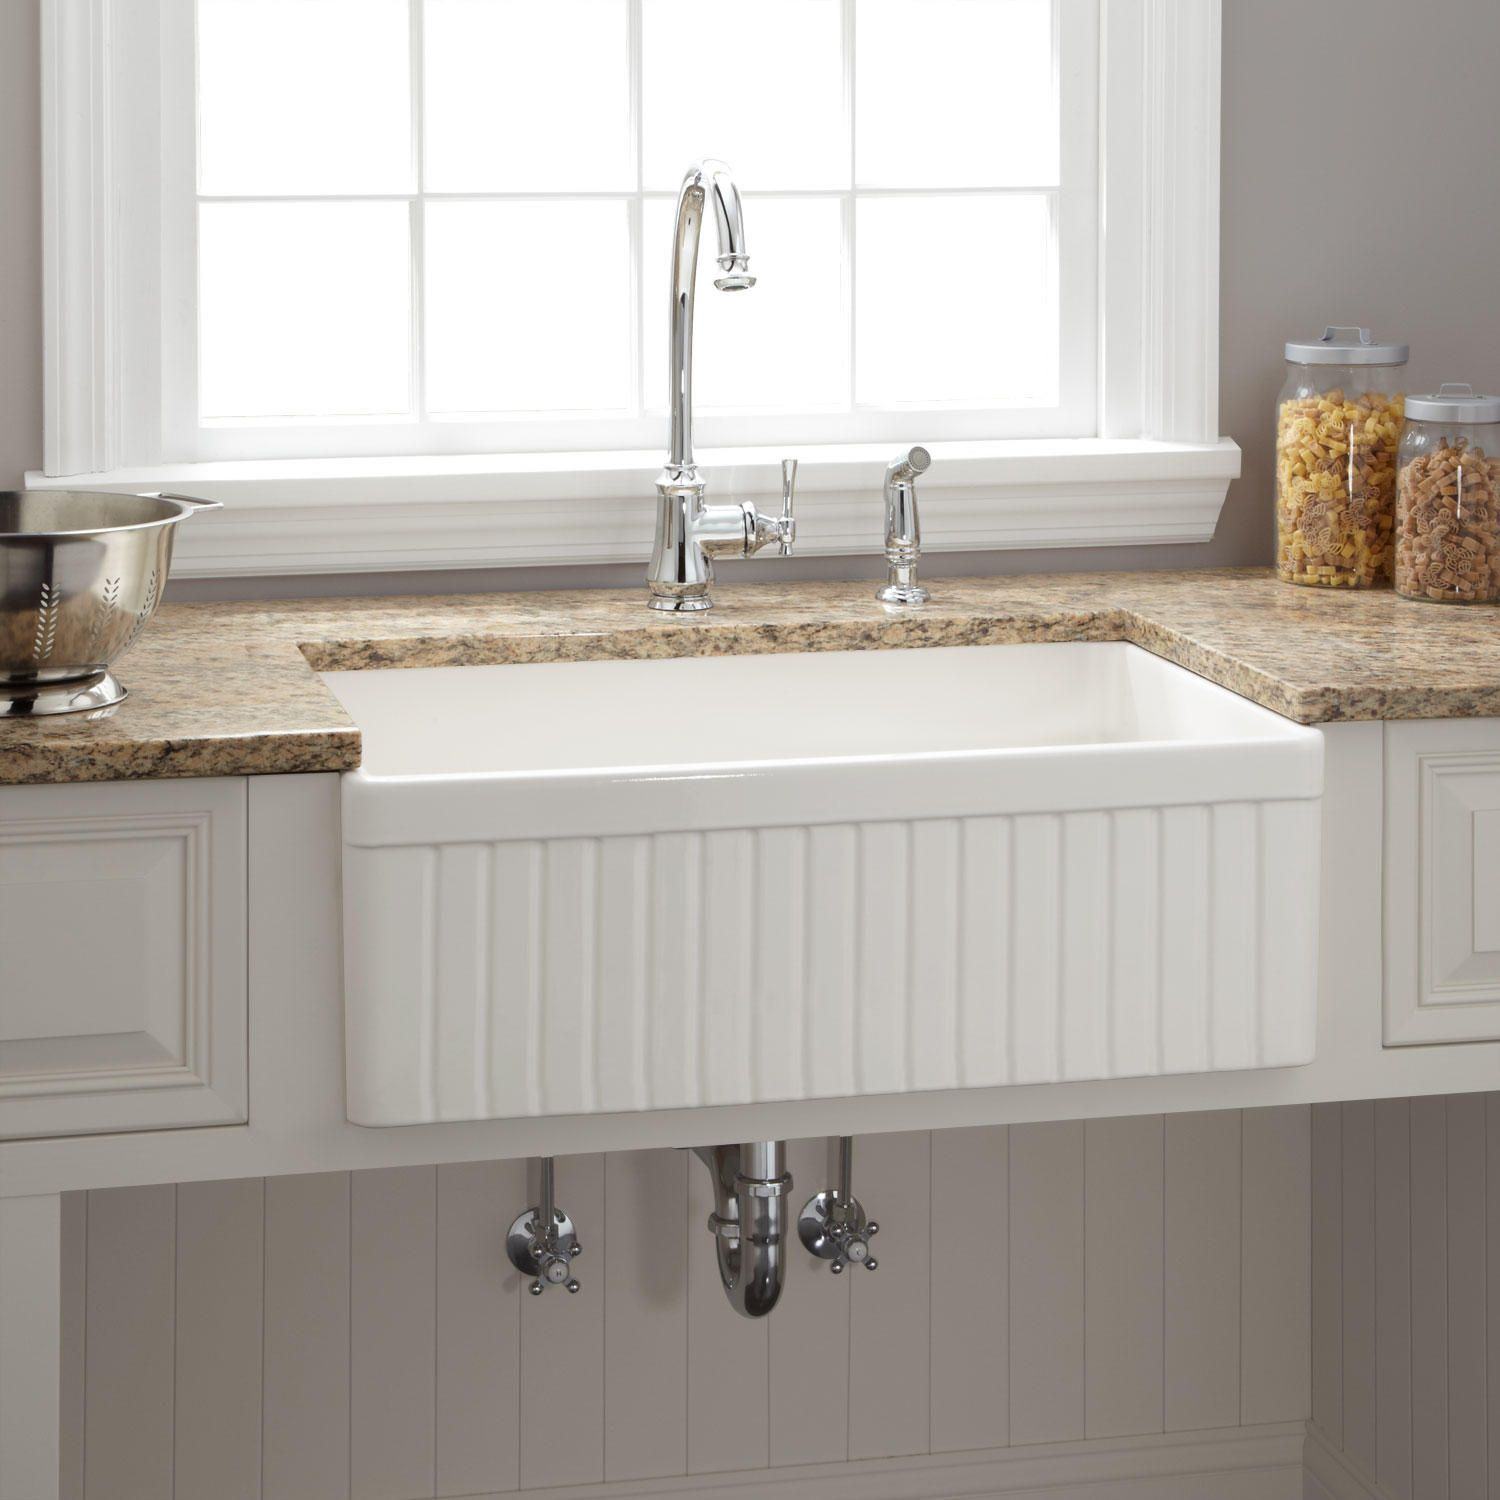 kitchen sink without cabinet green countertops farmhouse buying guide